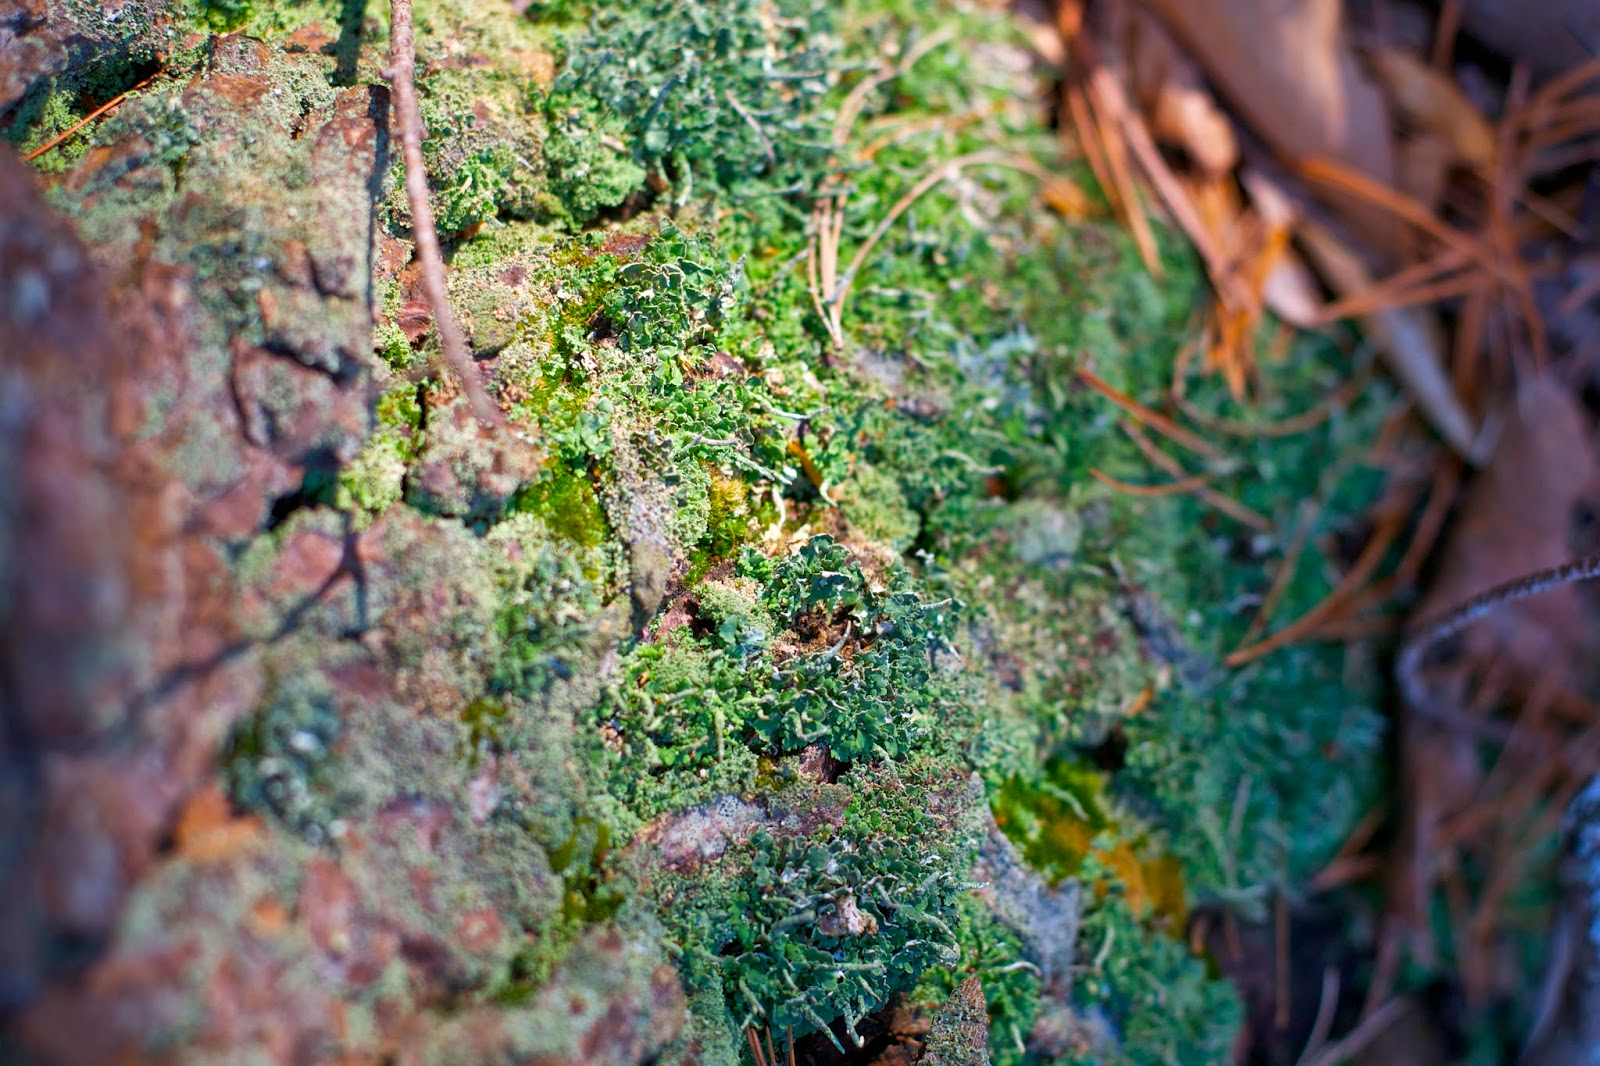 Moss and lichen on a tree trunk.